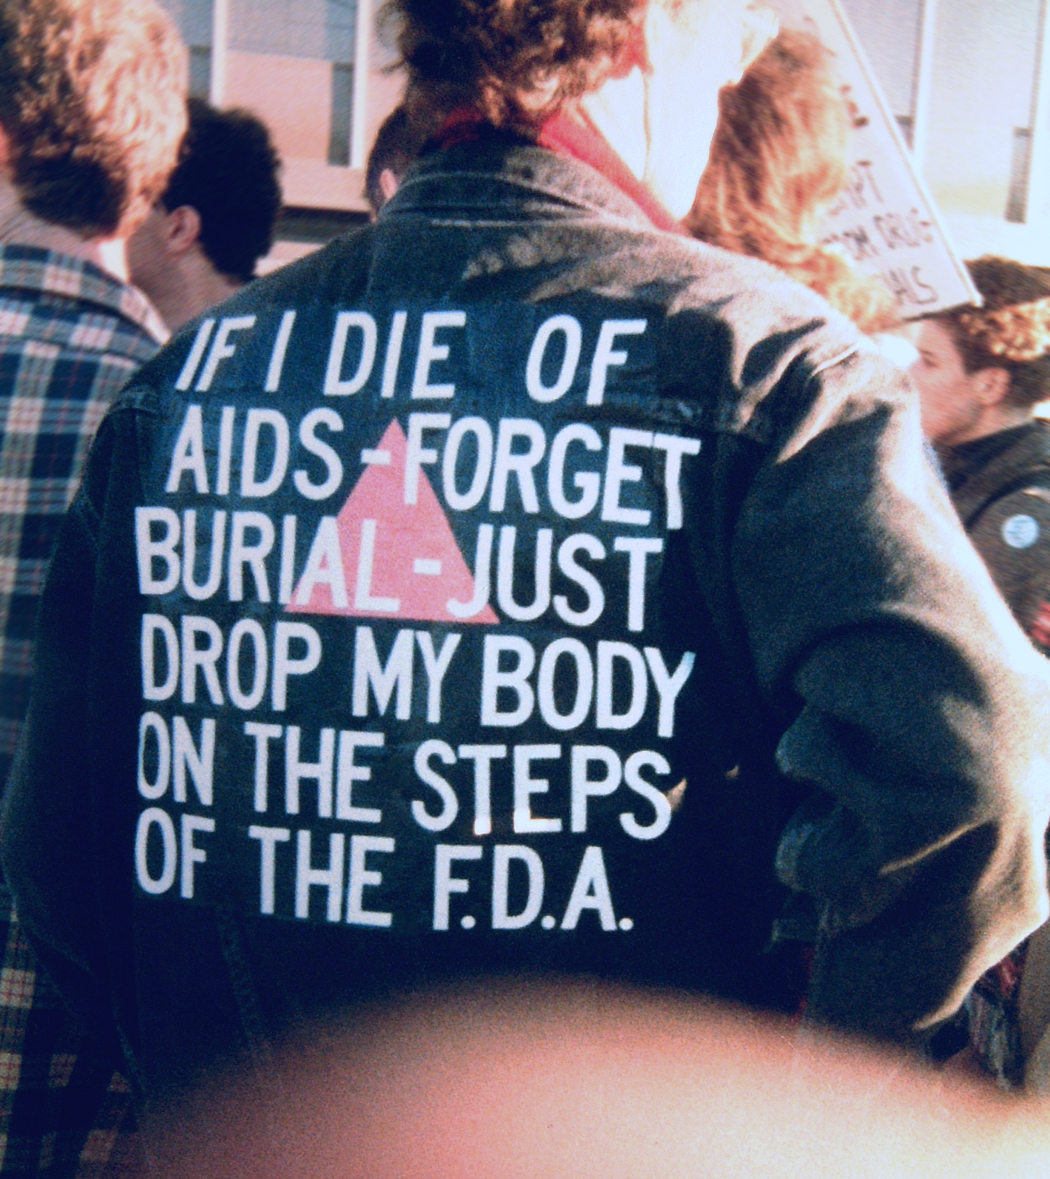 museumghost :      queerembraces :     David Wojnarowicz wore this jacket in 1988, just 4 years before he'd ultimately die from AIDS. Sadly, just a few years ago some of his artistic work was censored at the Smithsonian. People in power are still content to try and erase his history and the continued struggles of people with AIDS    (that exhibition was hide/seek in 2010.)